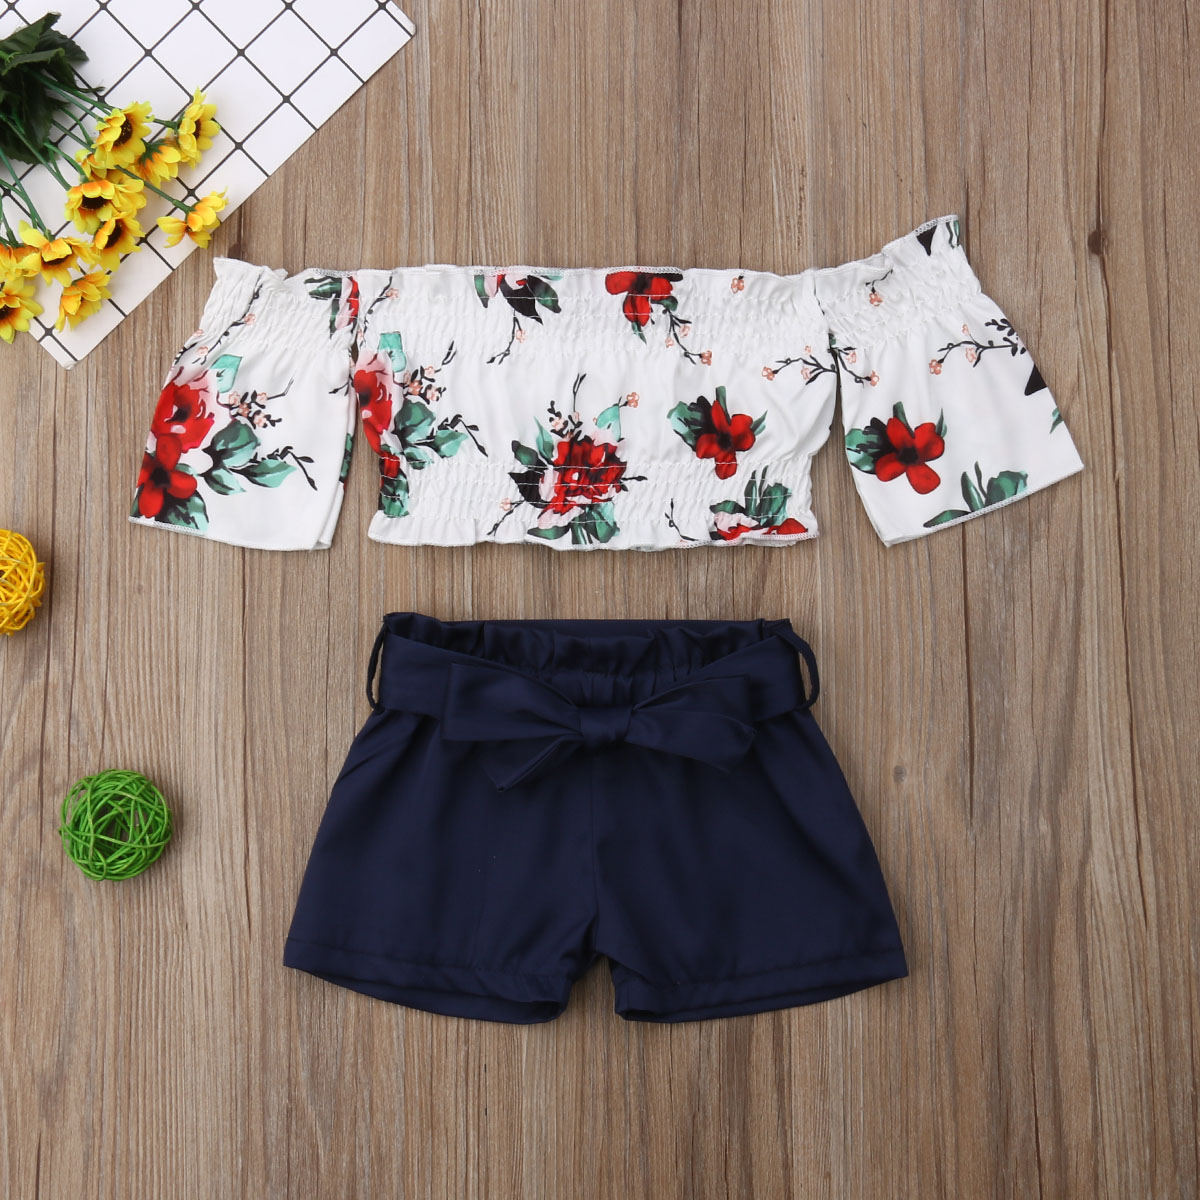 MIOIM 2PCS Infant Toddler Baby Girls Tassel Crop Tops Shorts Bottom Outfits